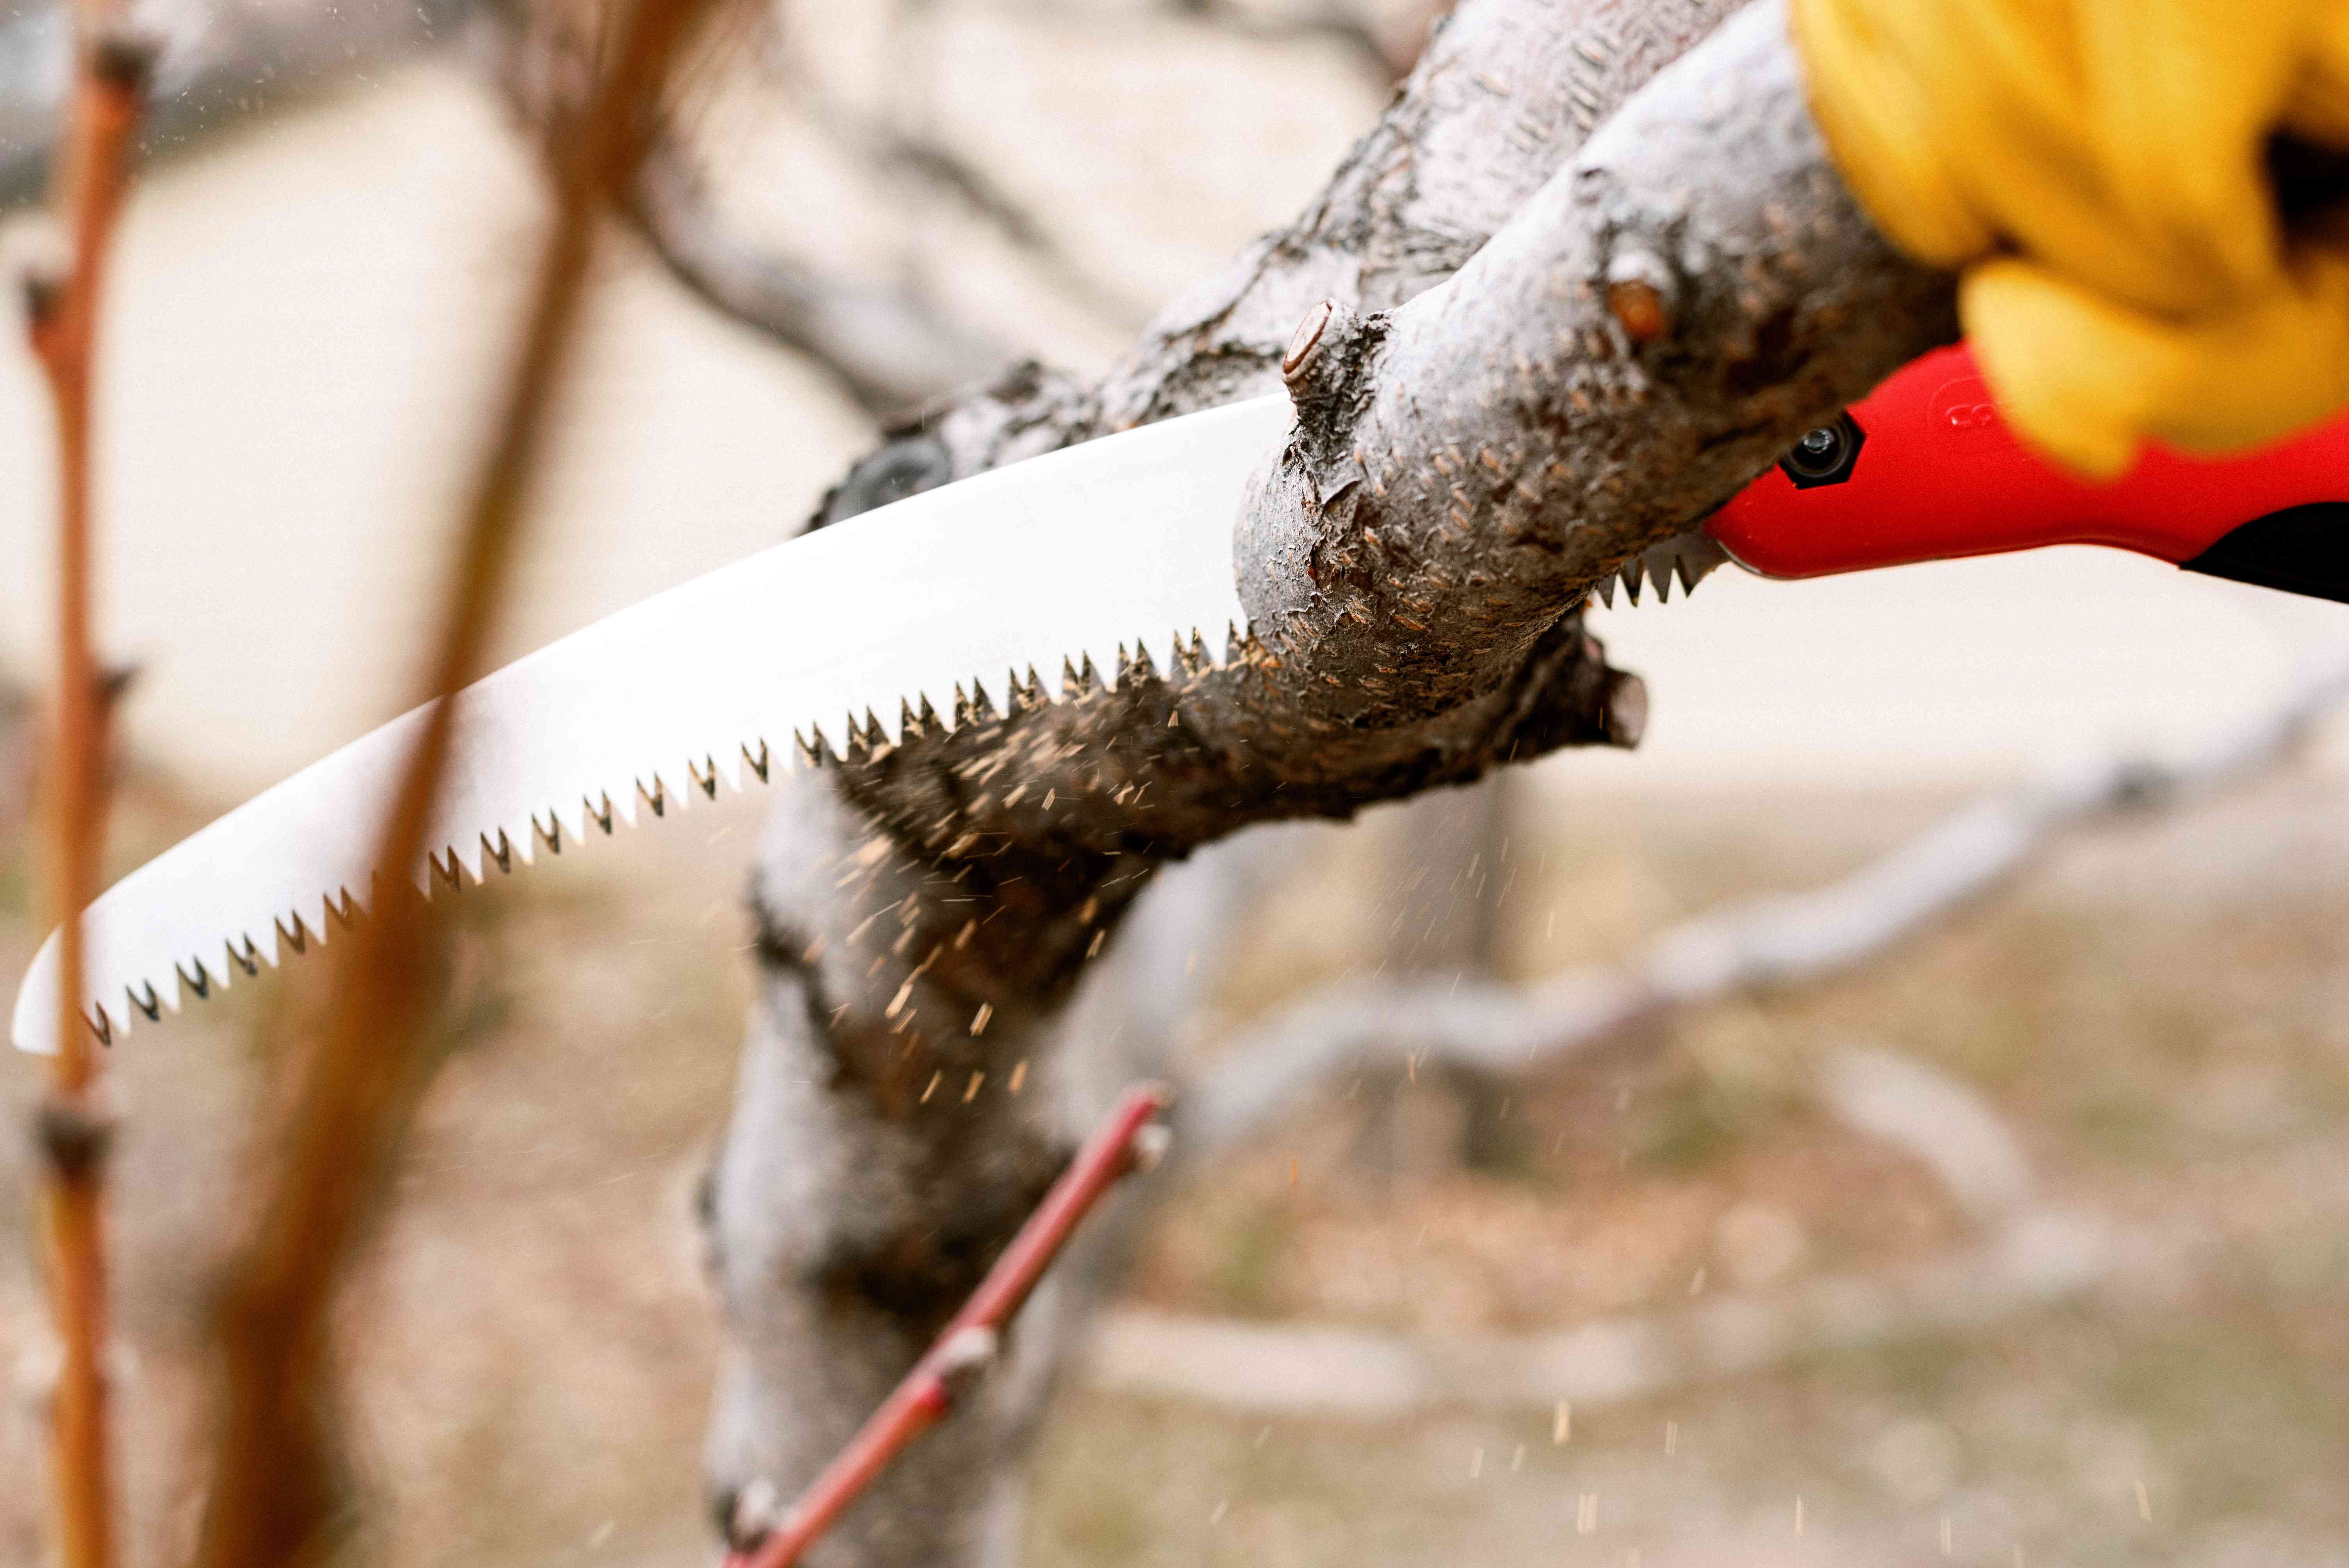 Pruning saw cutting into shrub branch with brisk speed